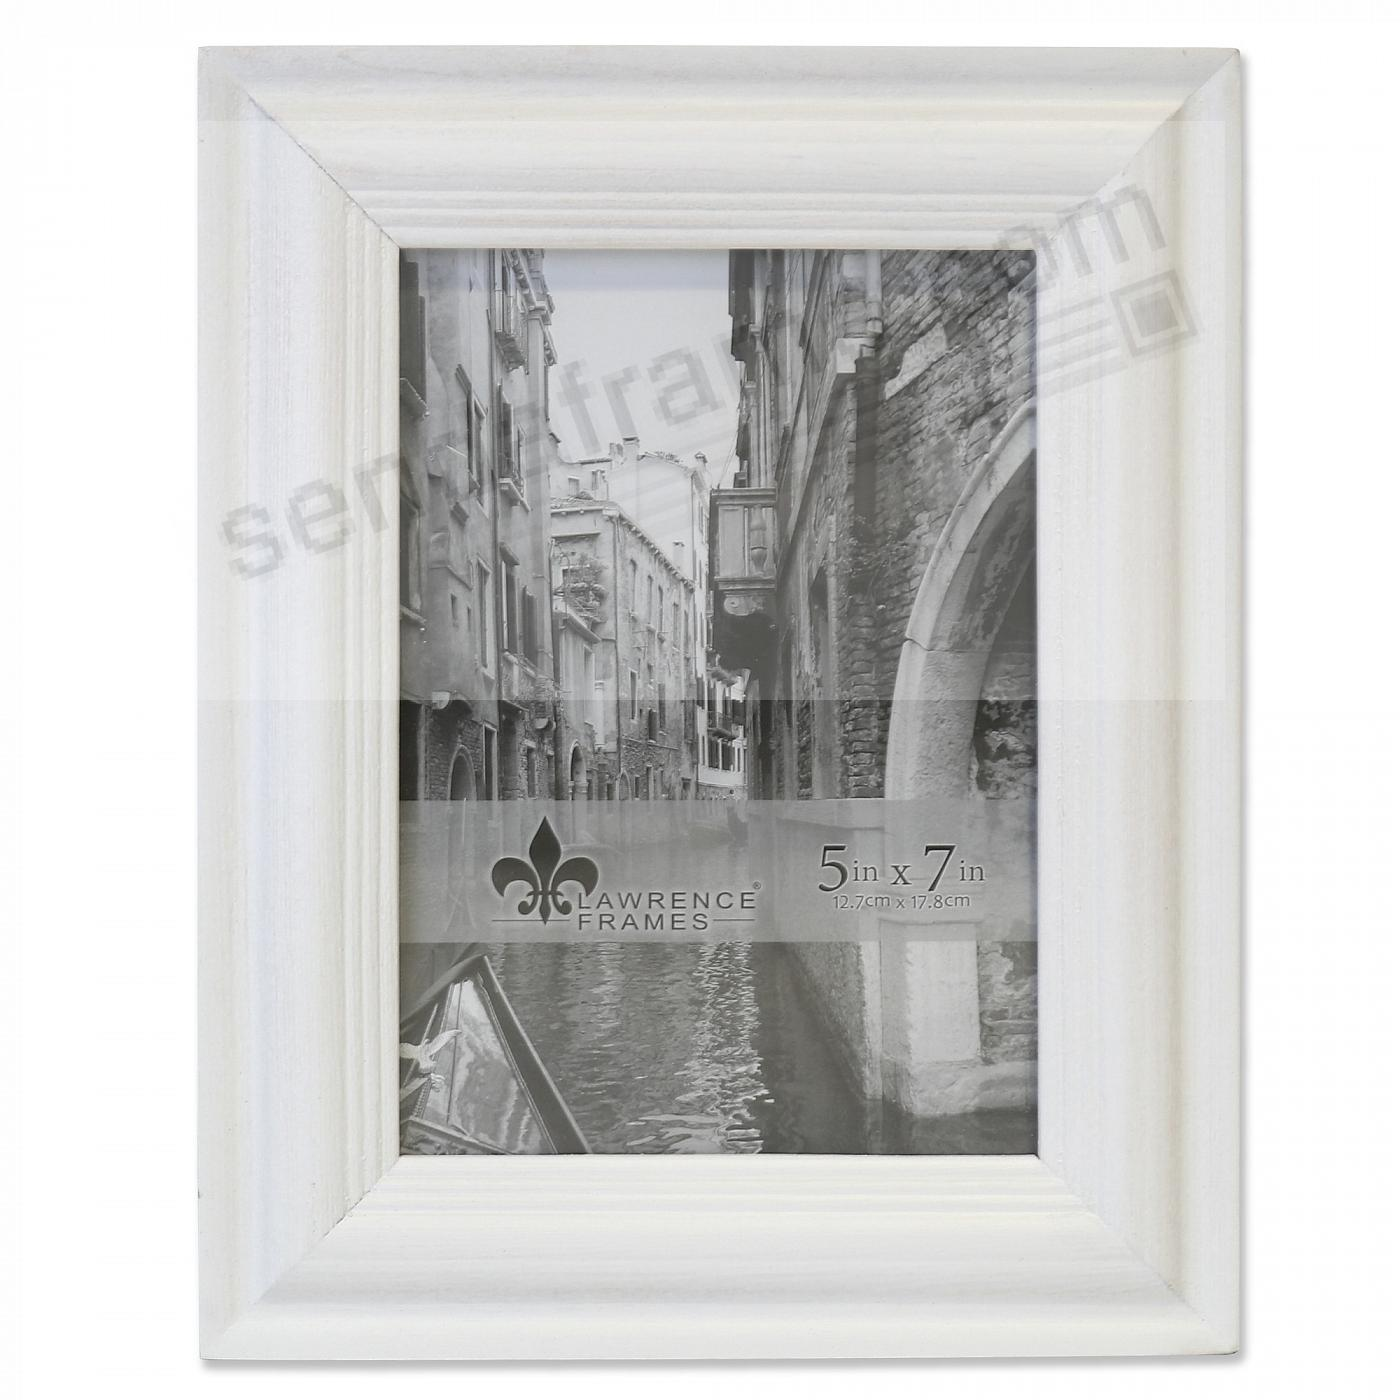 SUNWASHED WHITE 5x7 frame by Lawrence®